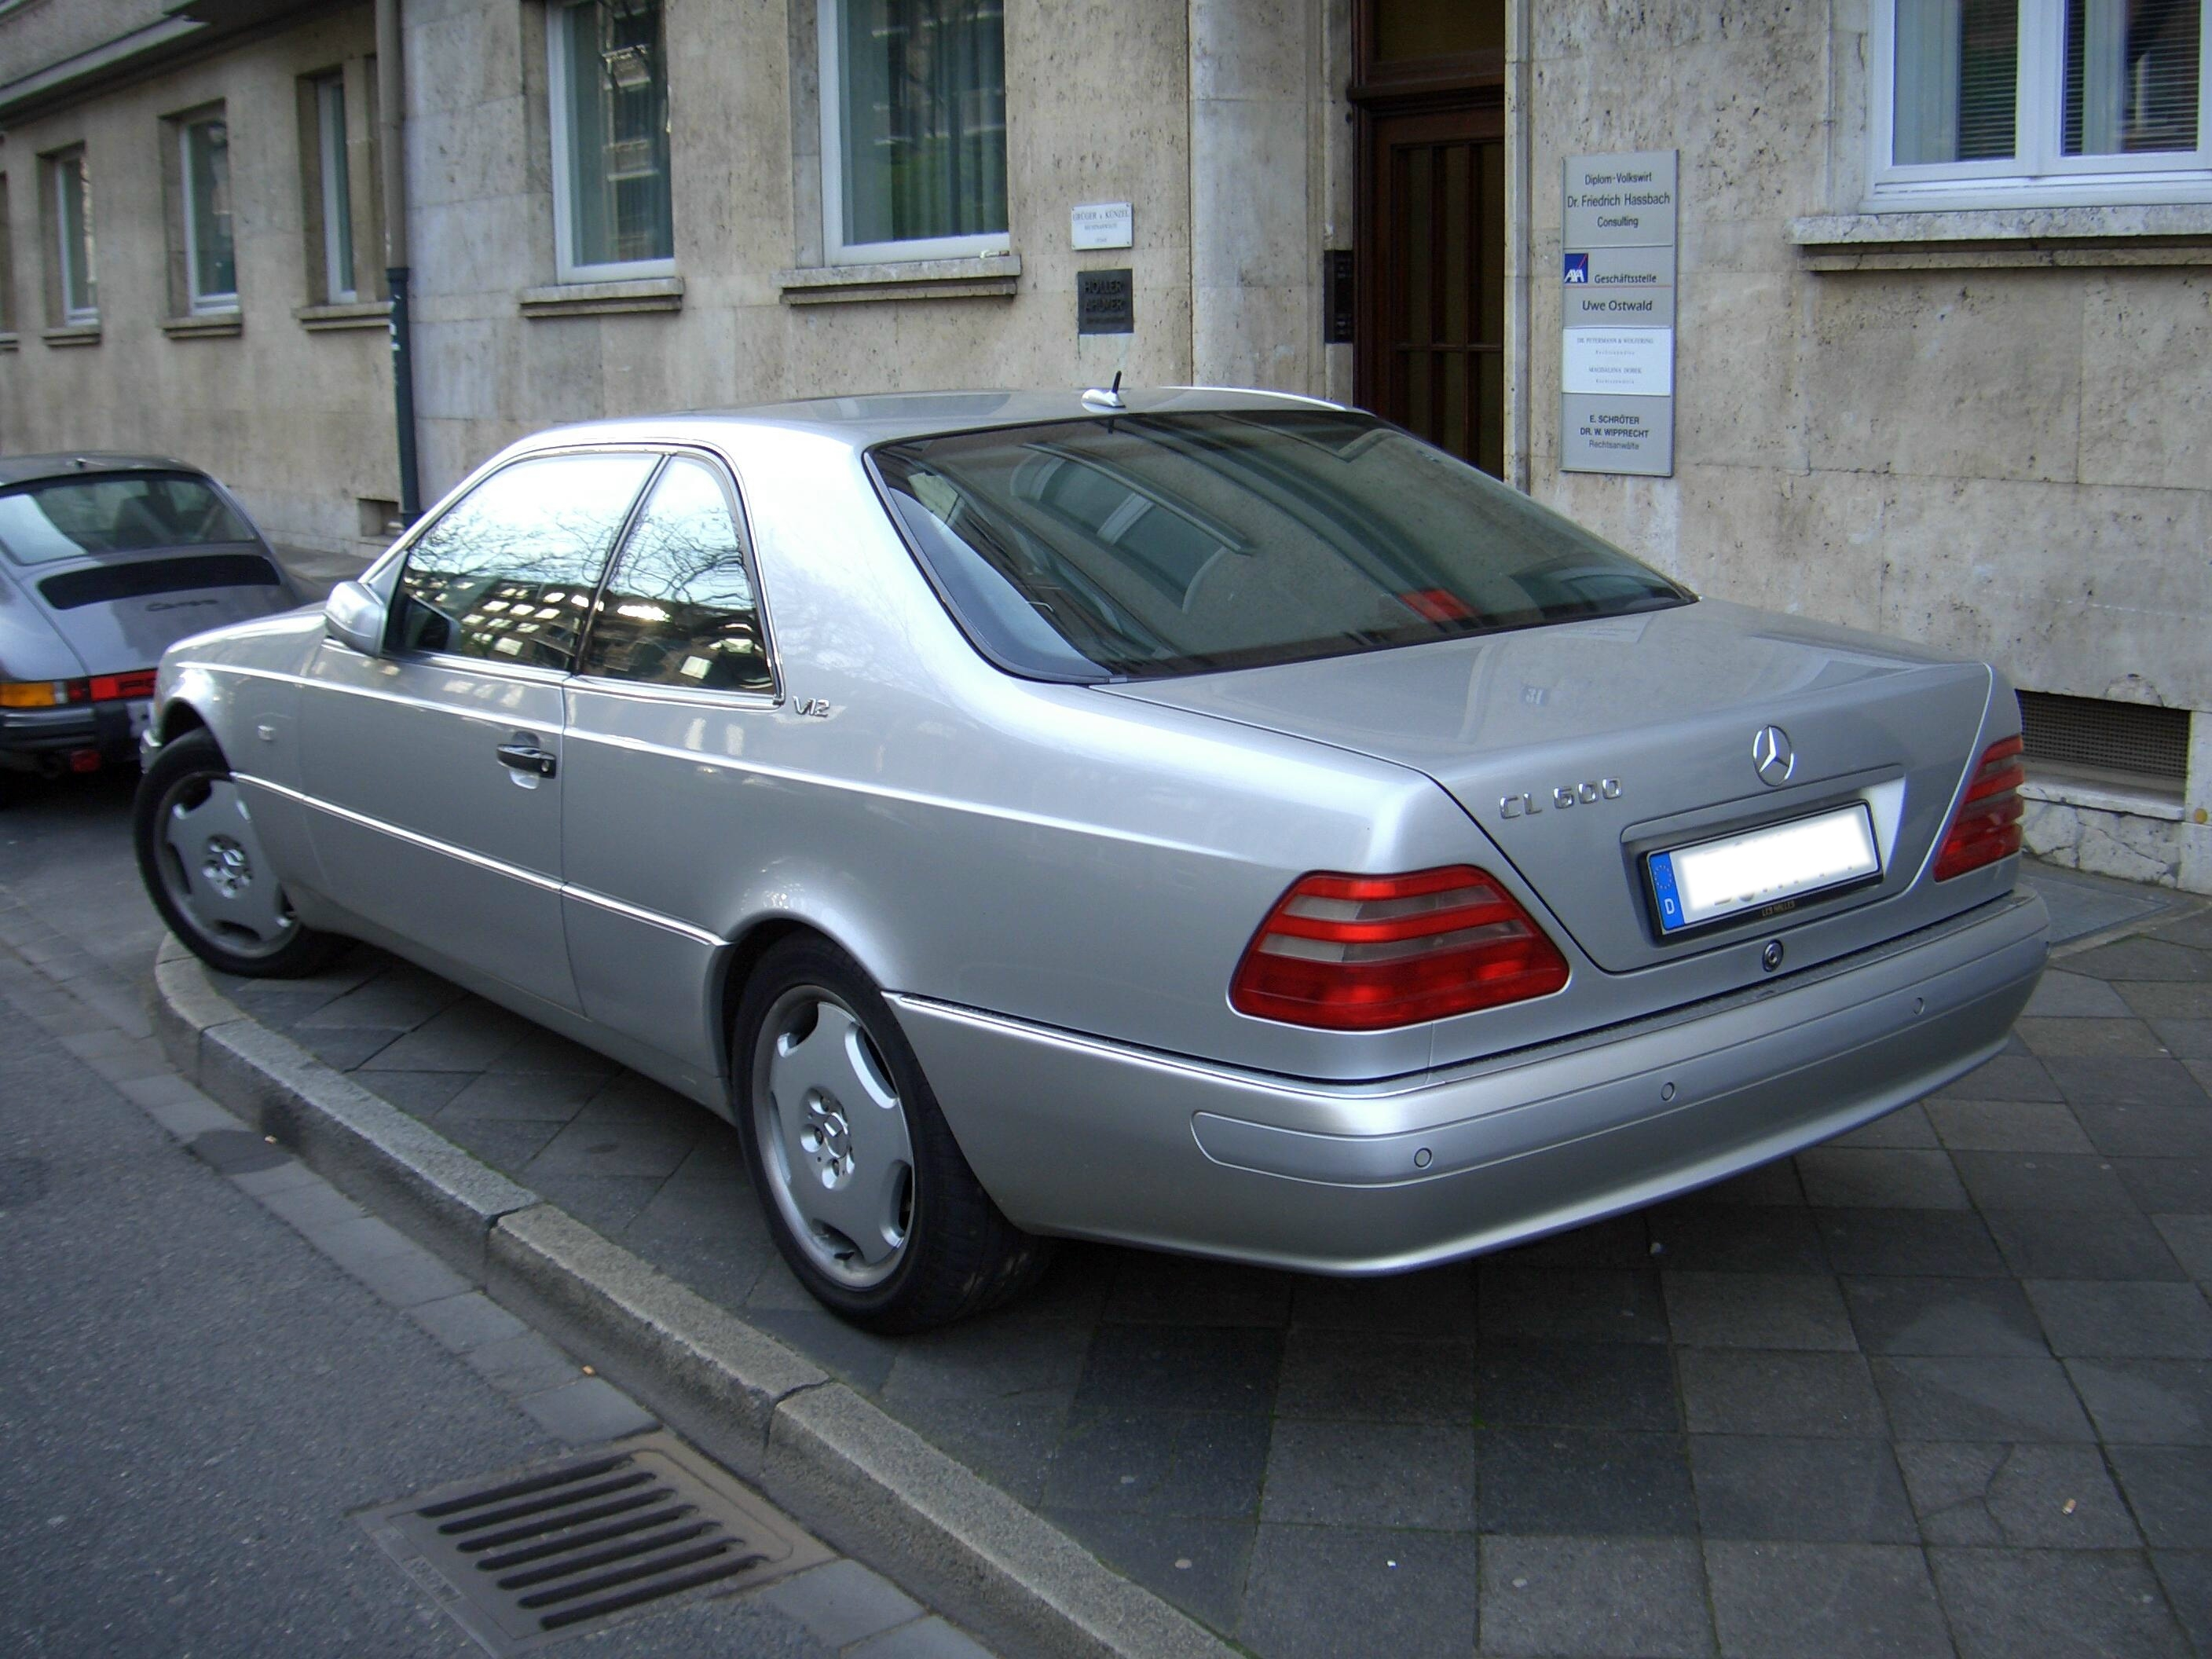 datei:mercedes-benz cl600 c140 1991-1998 backleft 2008-04-18 u